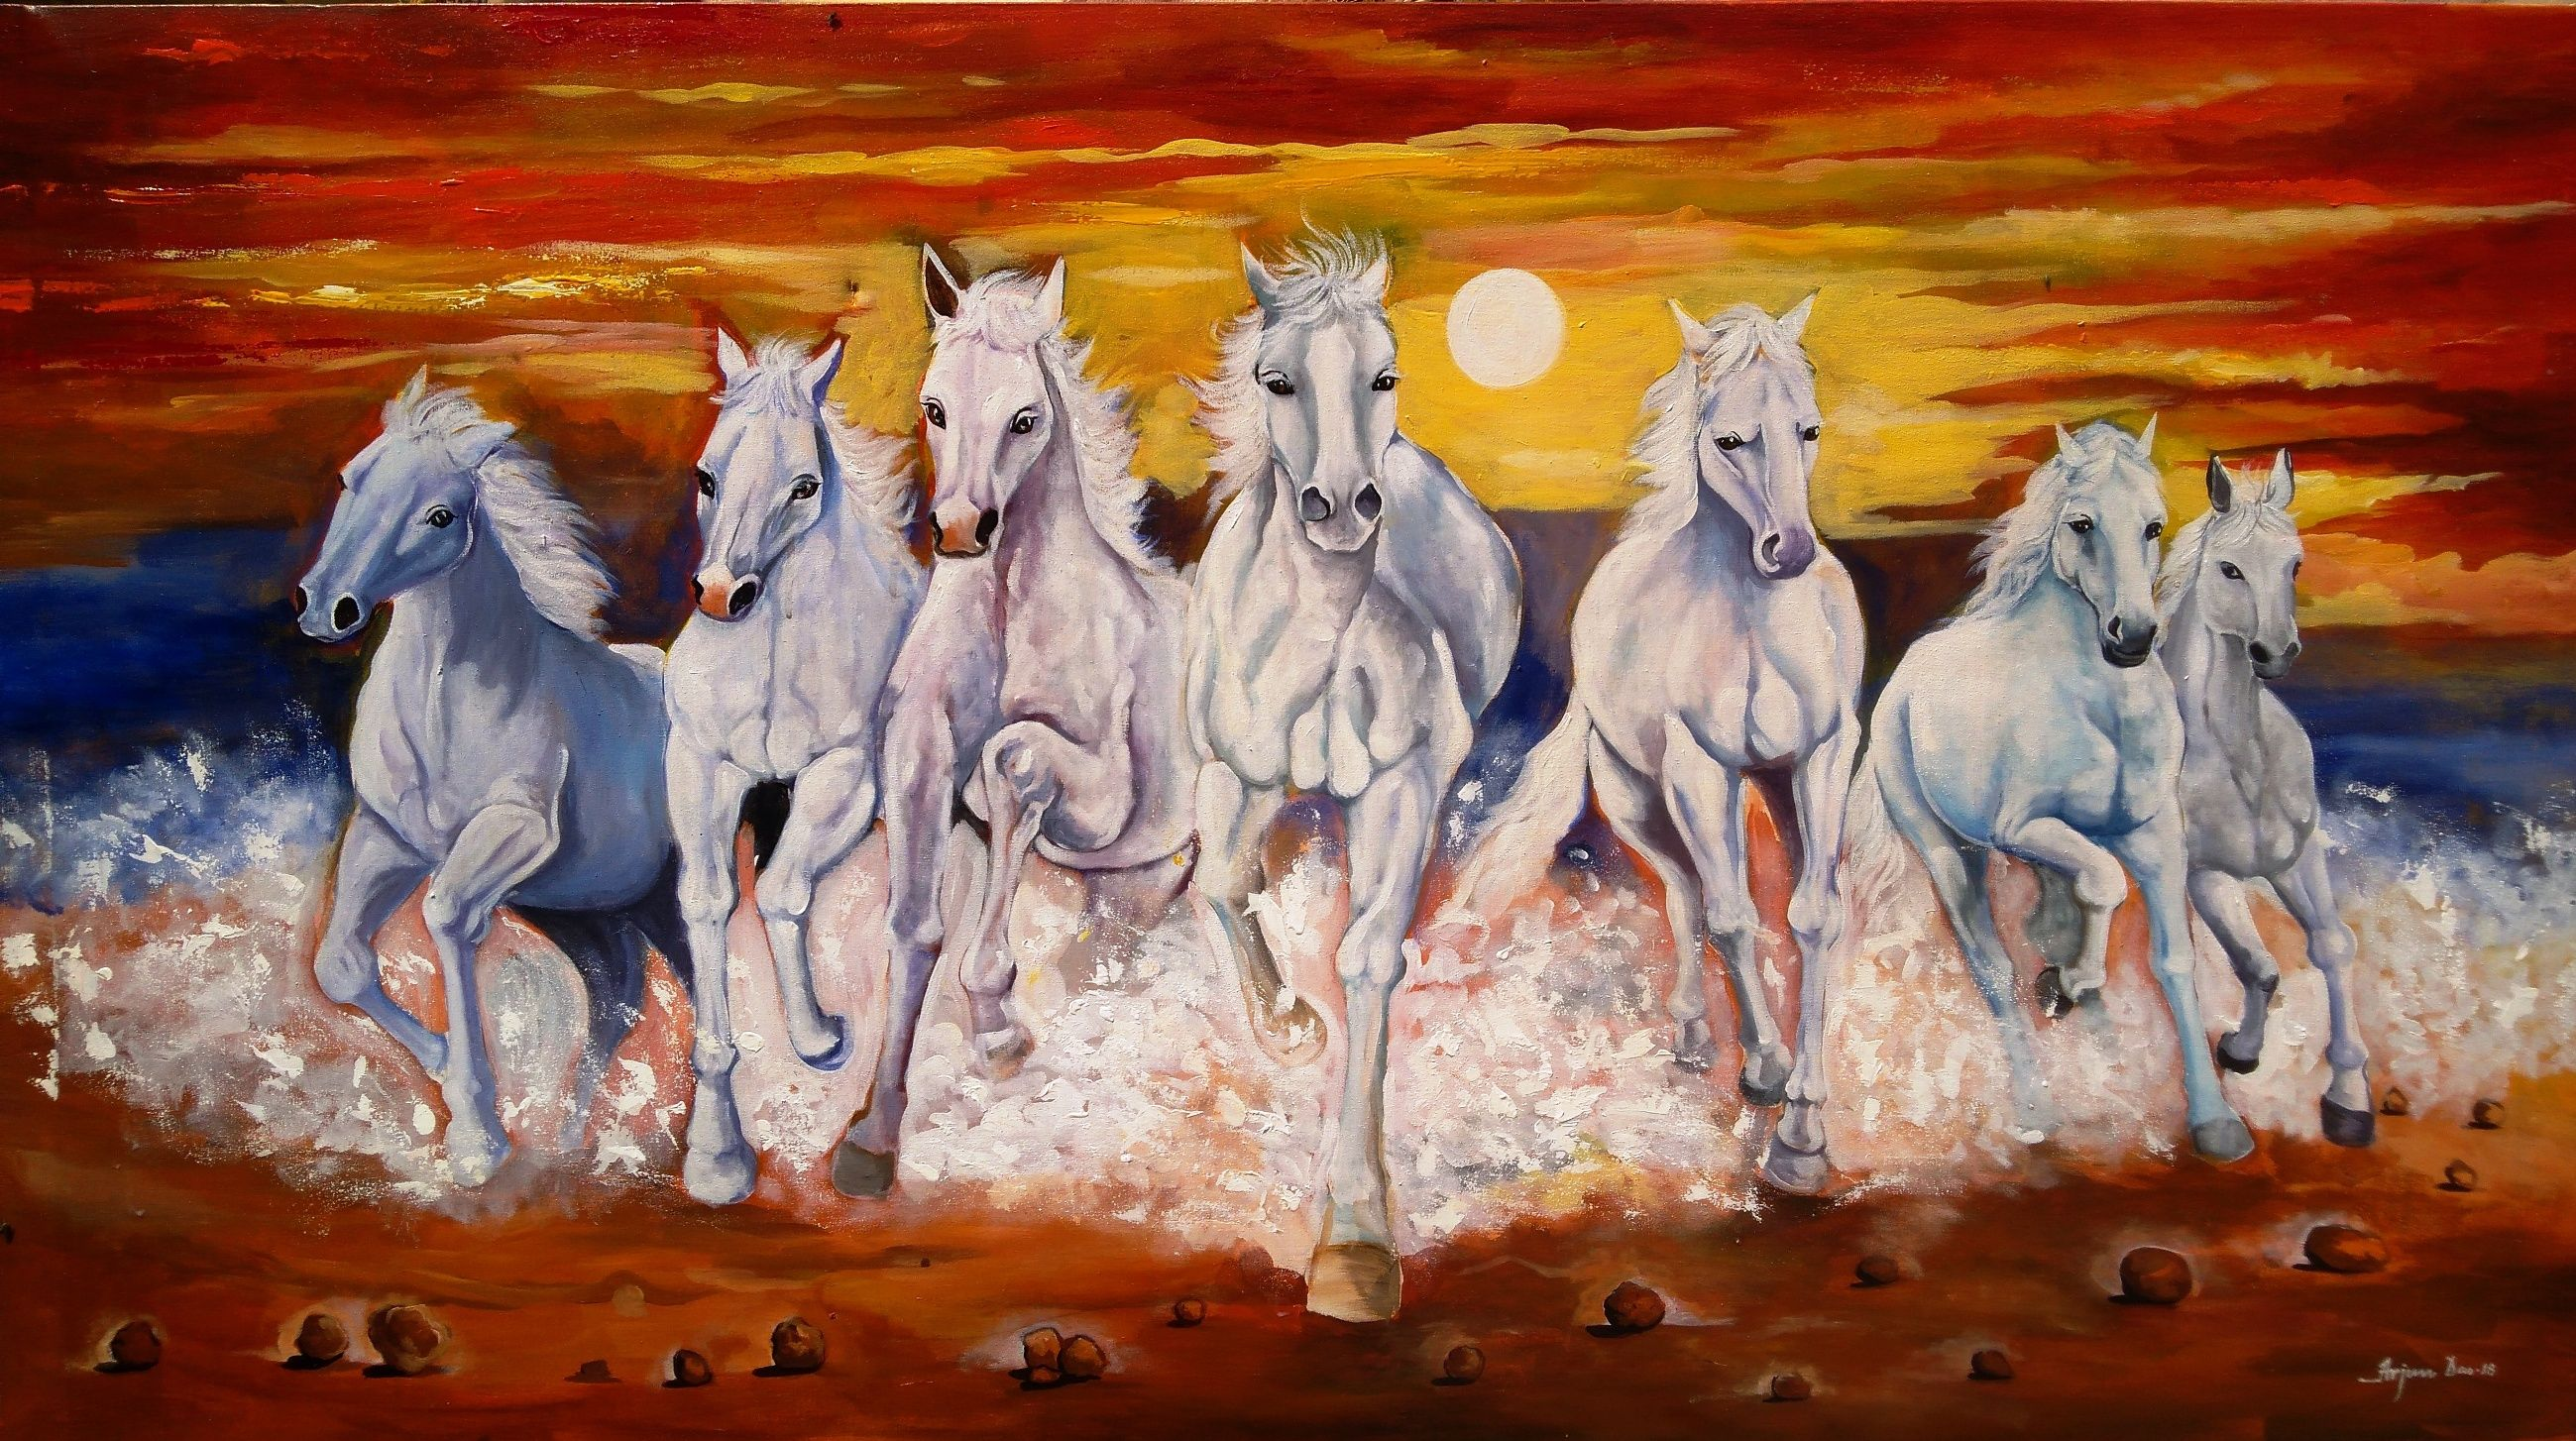 It Is A Beautiful Painting Of Seven Running White Horses The Artist Has Brilliantly Used The Acry White Horse Painting Horse Canvas Painting Horse Artwork